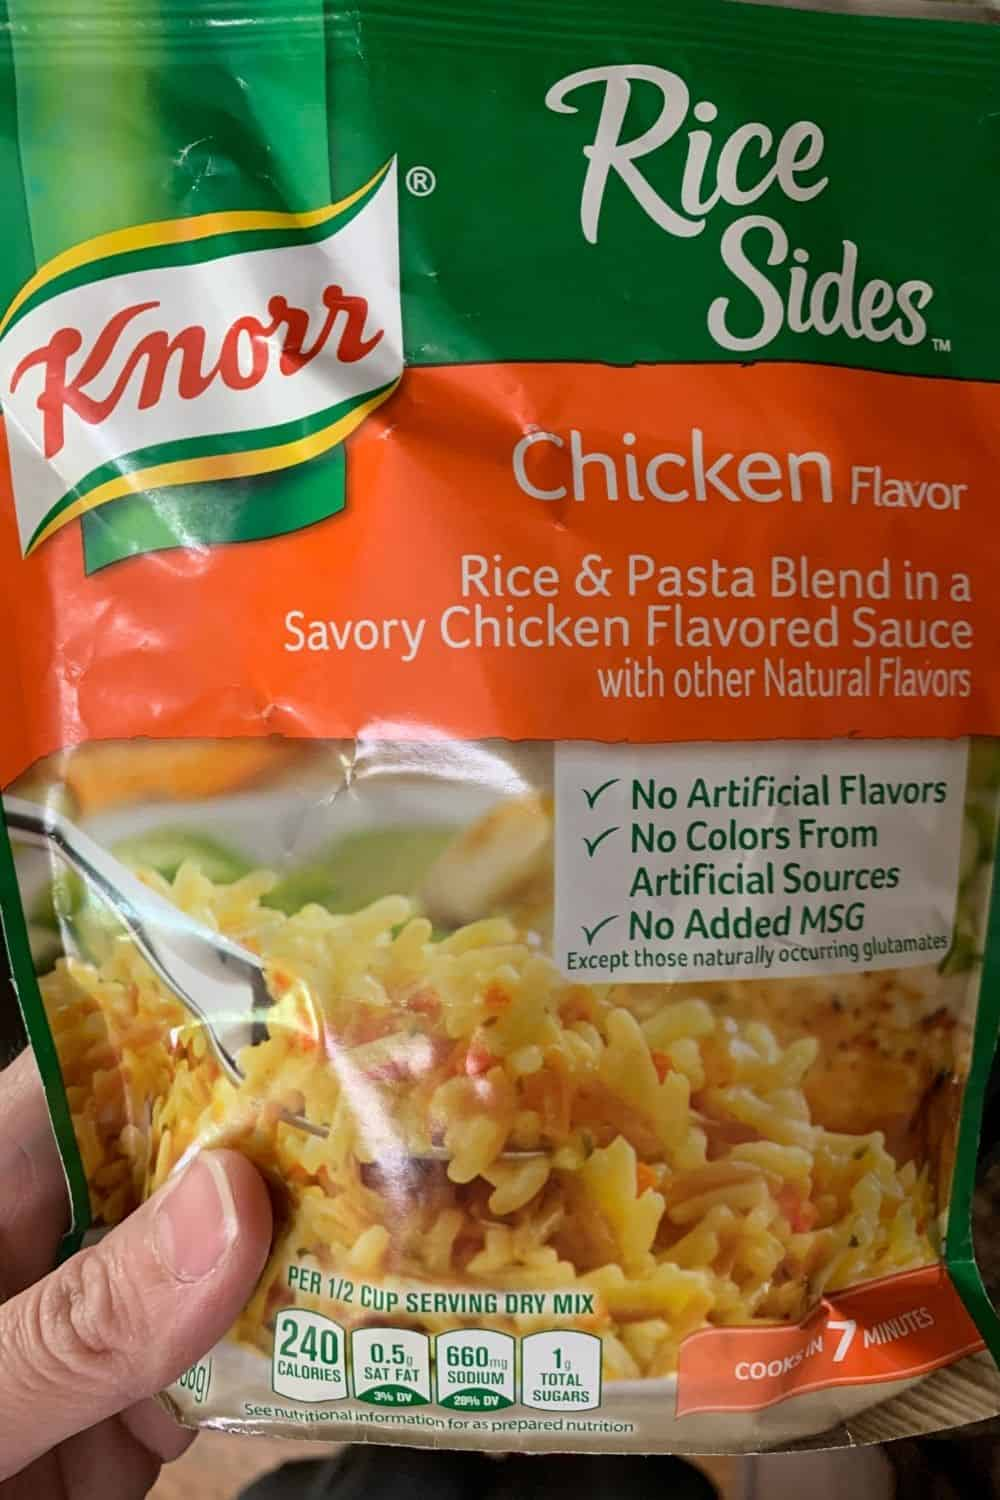 a package of Knorr Rice Sides  in chicken flavor